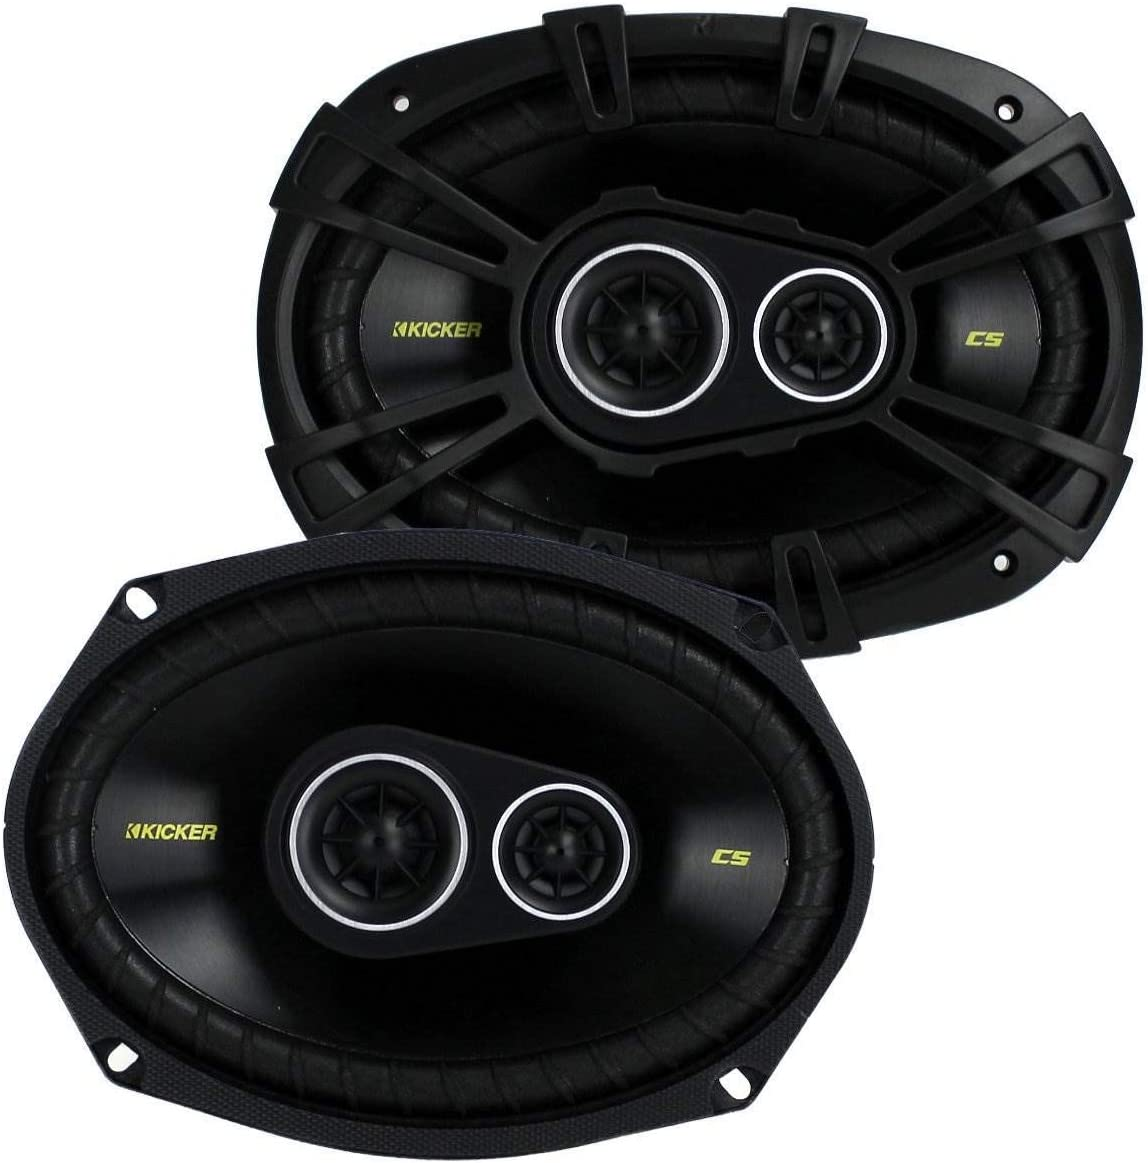 The Best 3-Way 6x9 Speakers for Bass